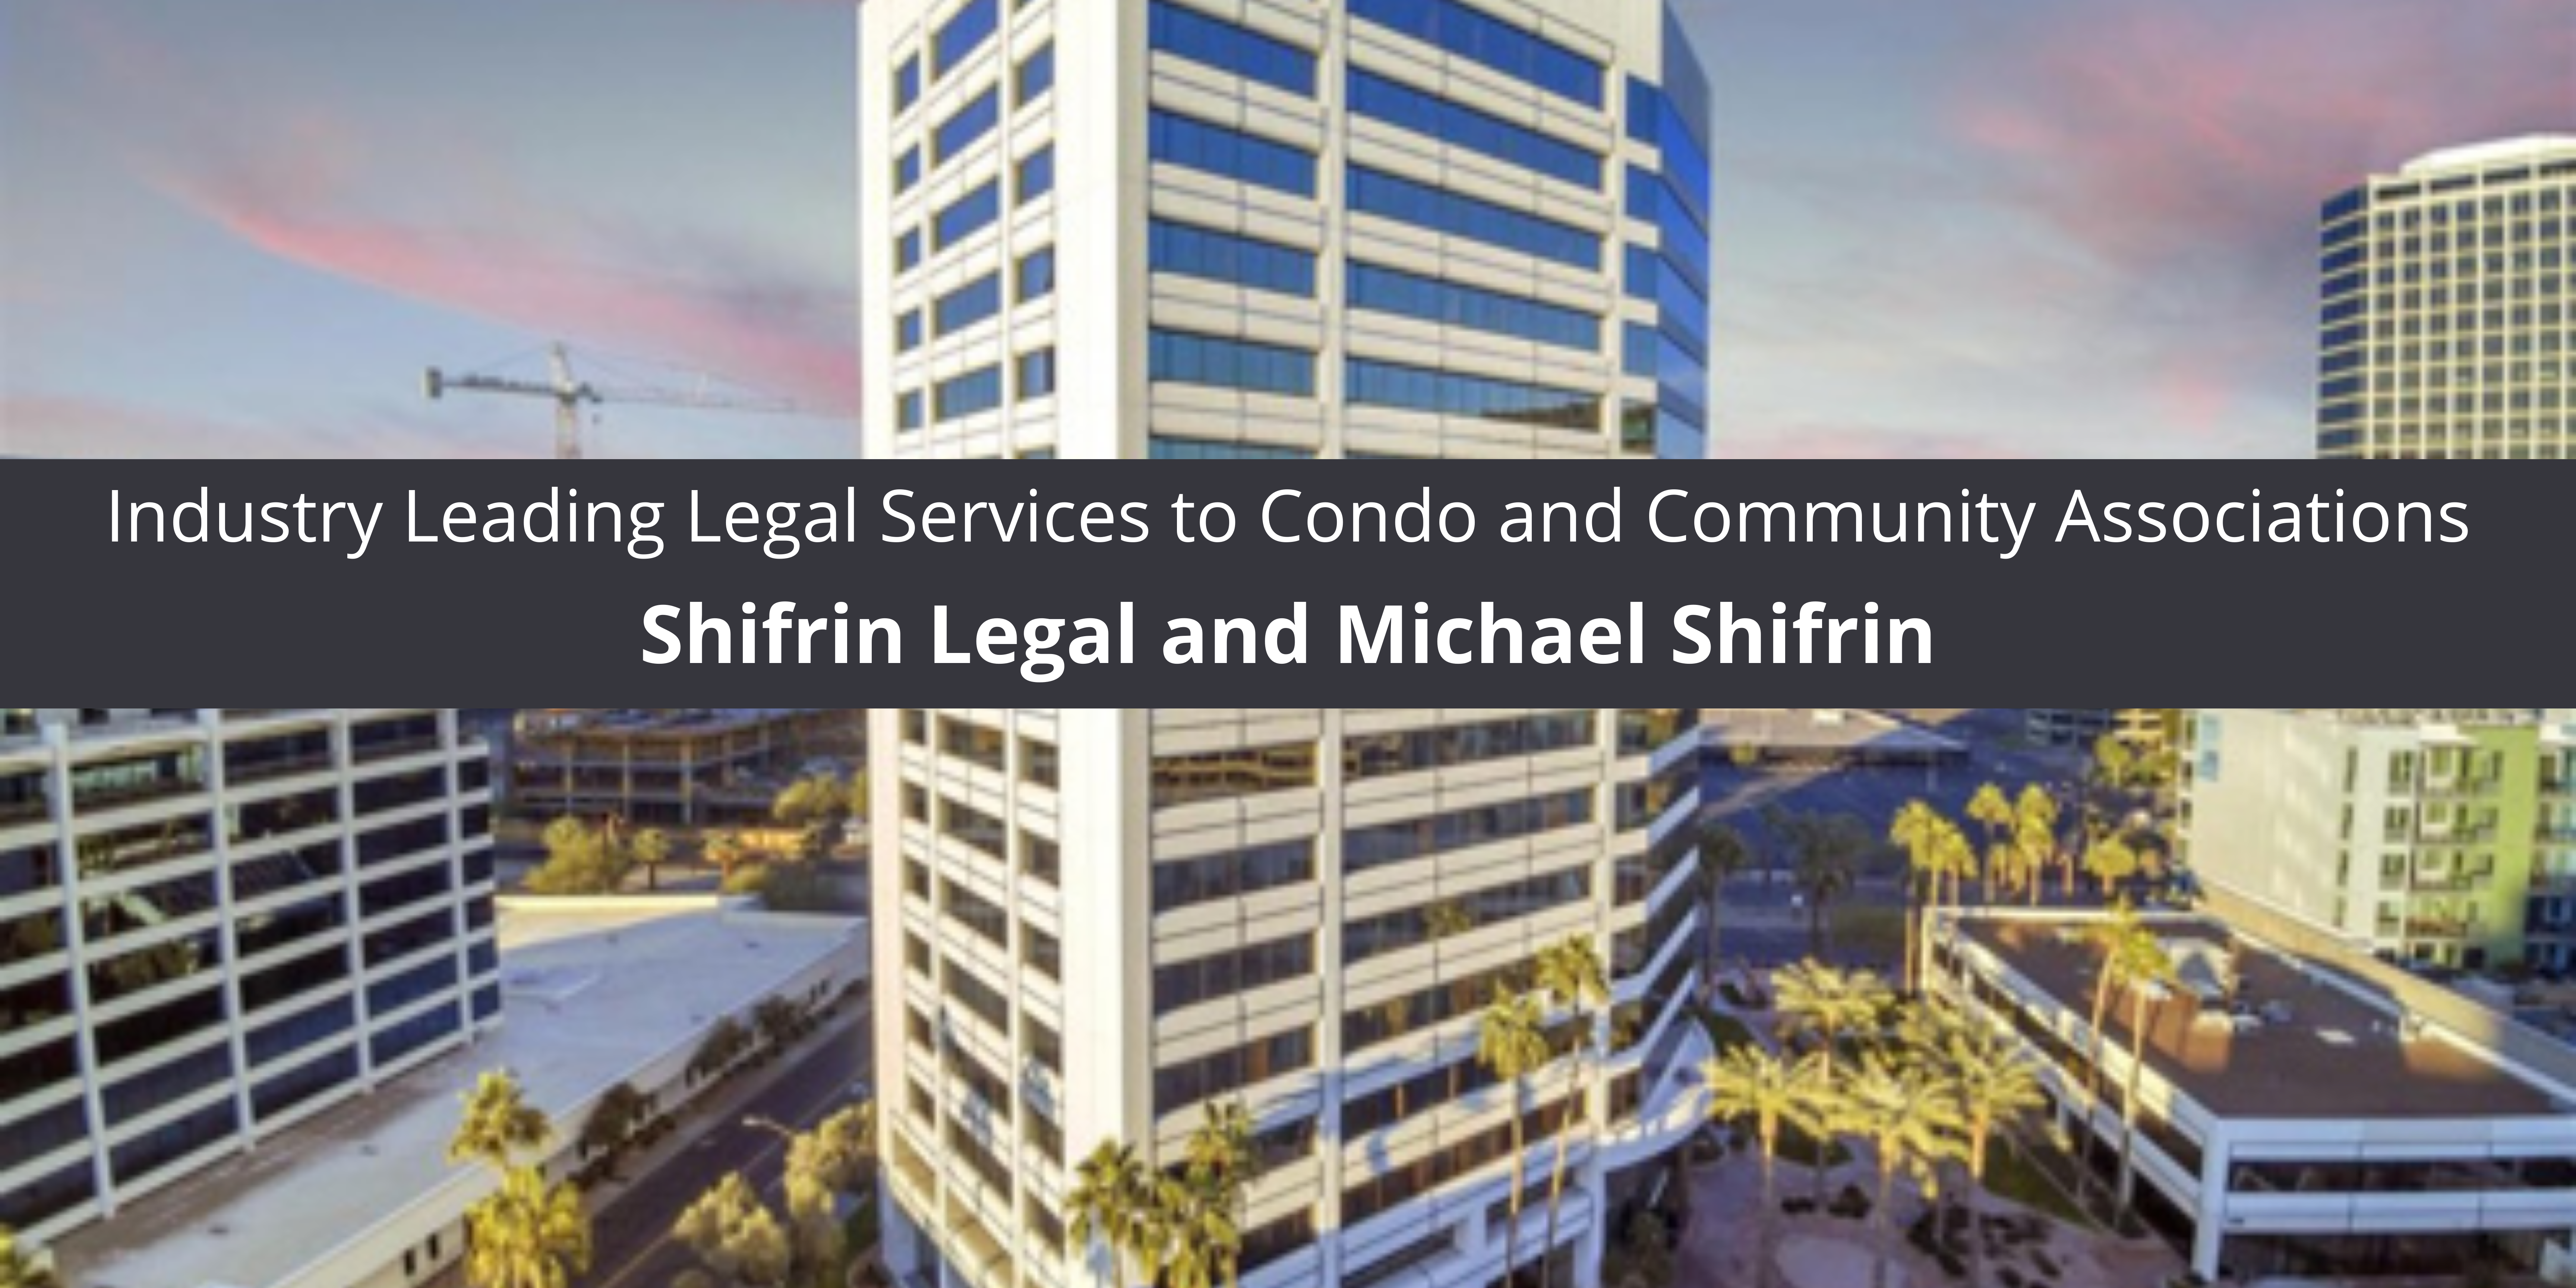 Industry Leading Legal Services to Condo and Community Associations